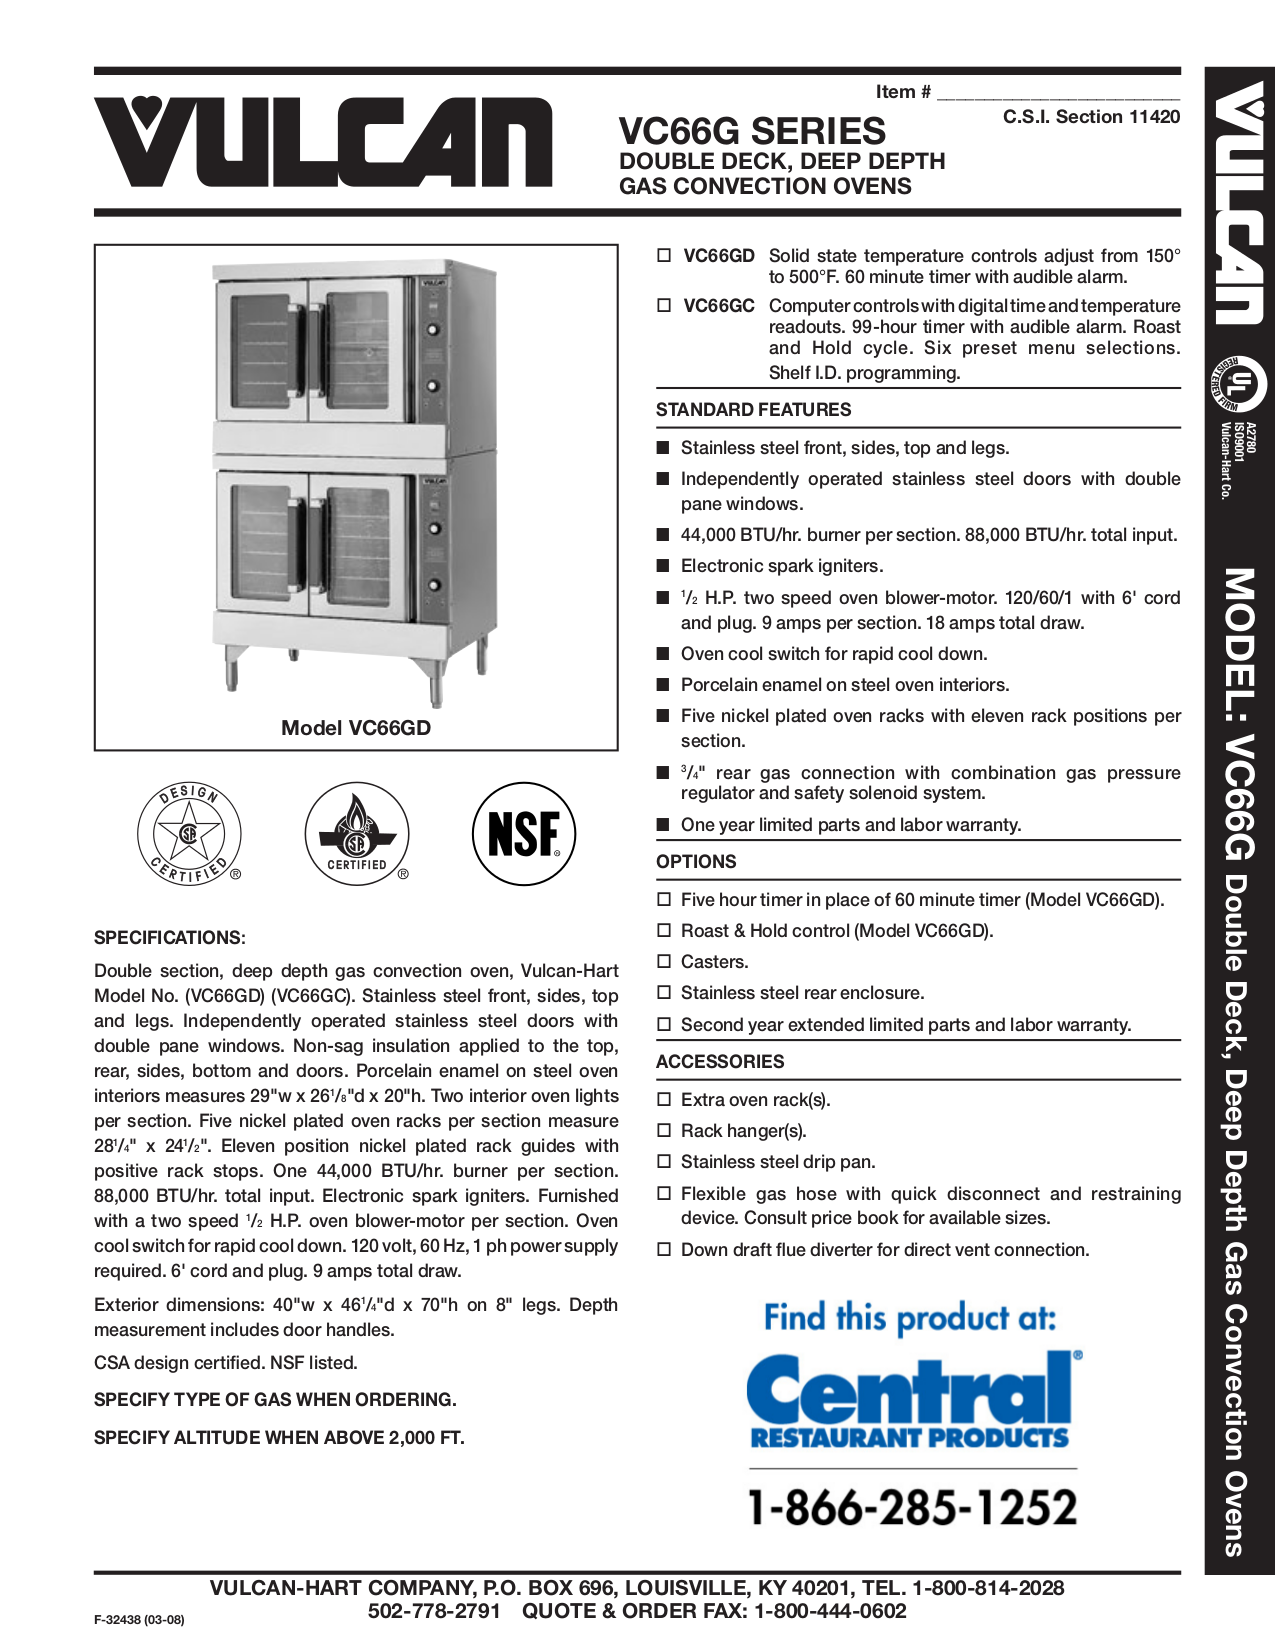 pdf for Vulcan Oven VC66GD manual